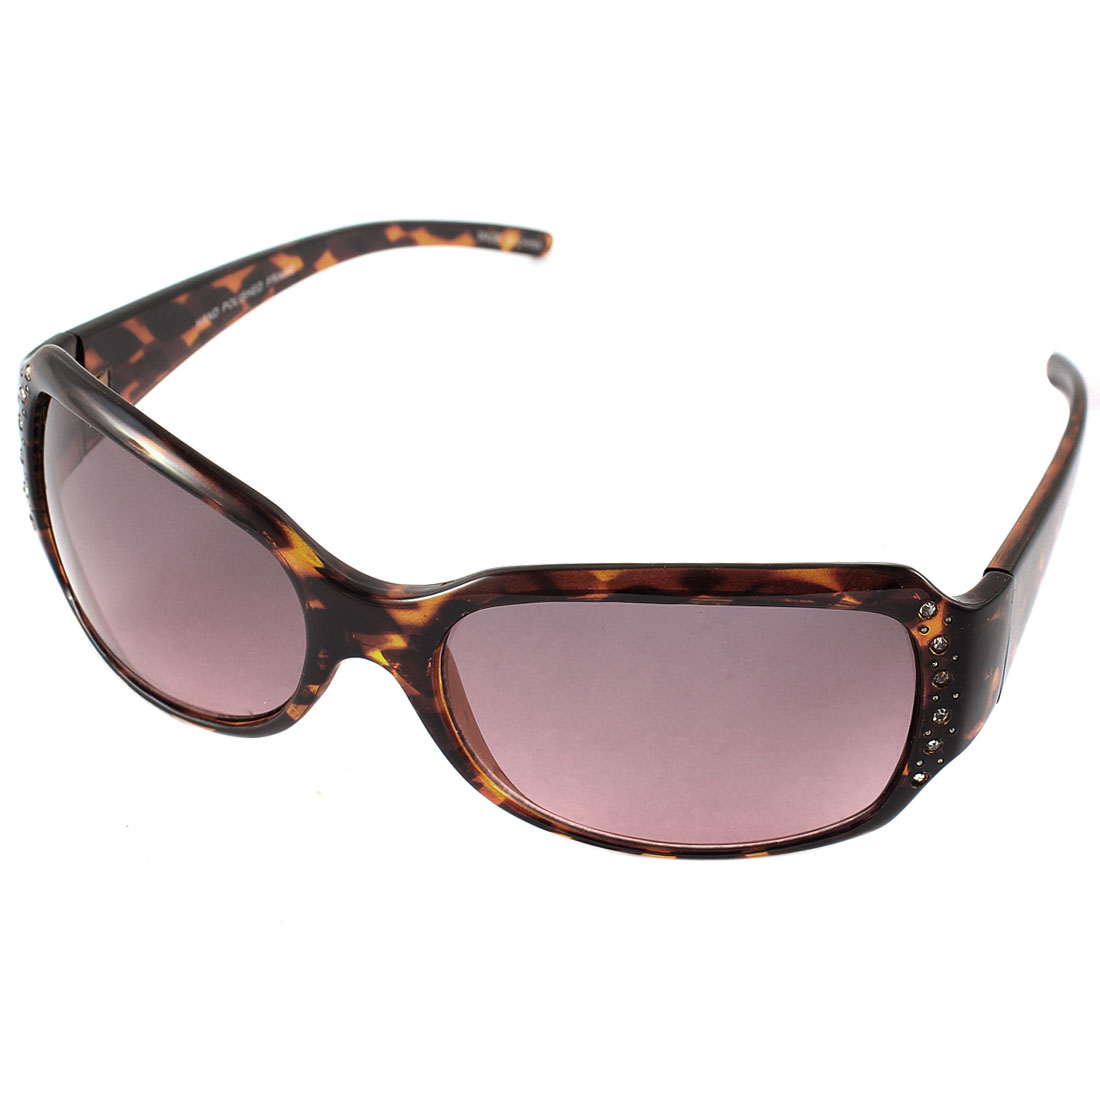 Plastic Rhinestone Women Stylish Leopard Sunglasses Eyewear Brown